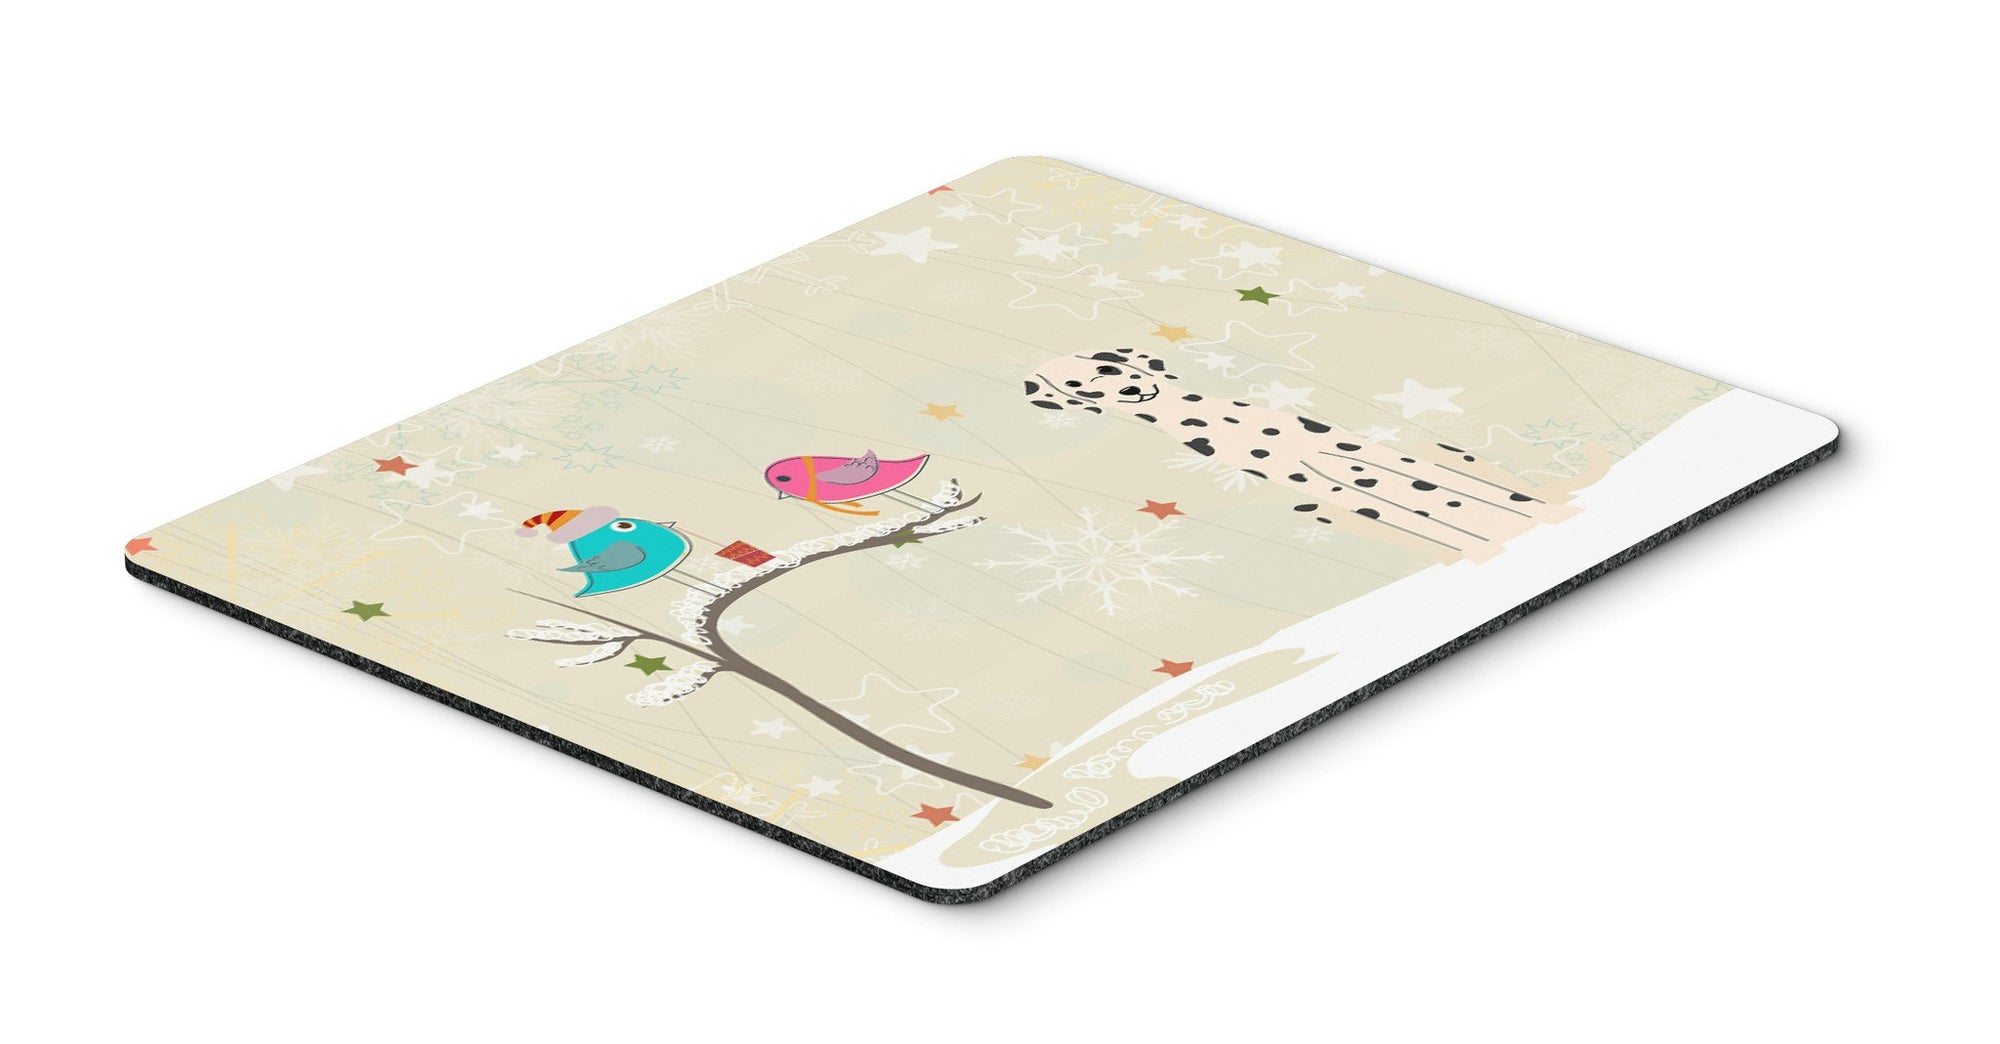 Christmas Presents between Friends Dalmatian Mouse Pad, Hot Pad or Trivet BB2569MP by Caroline's Treasures